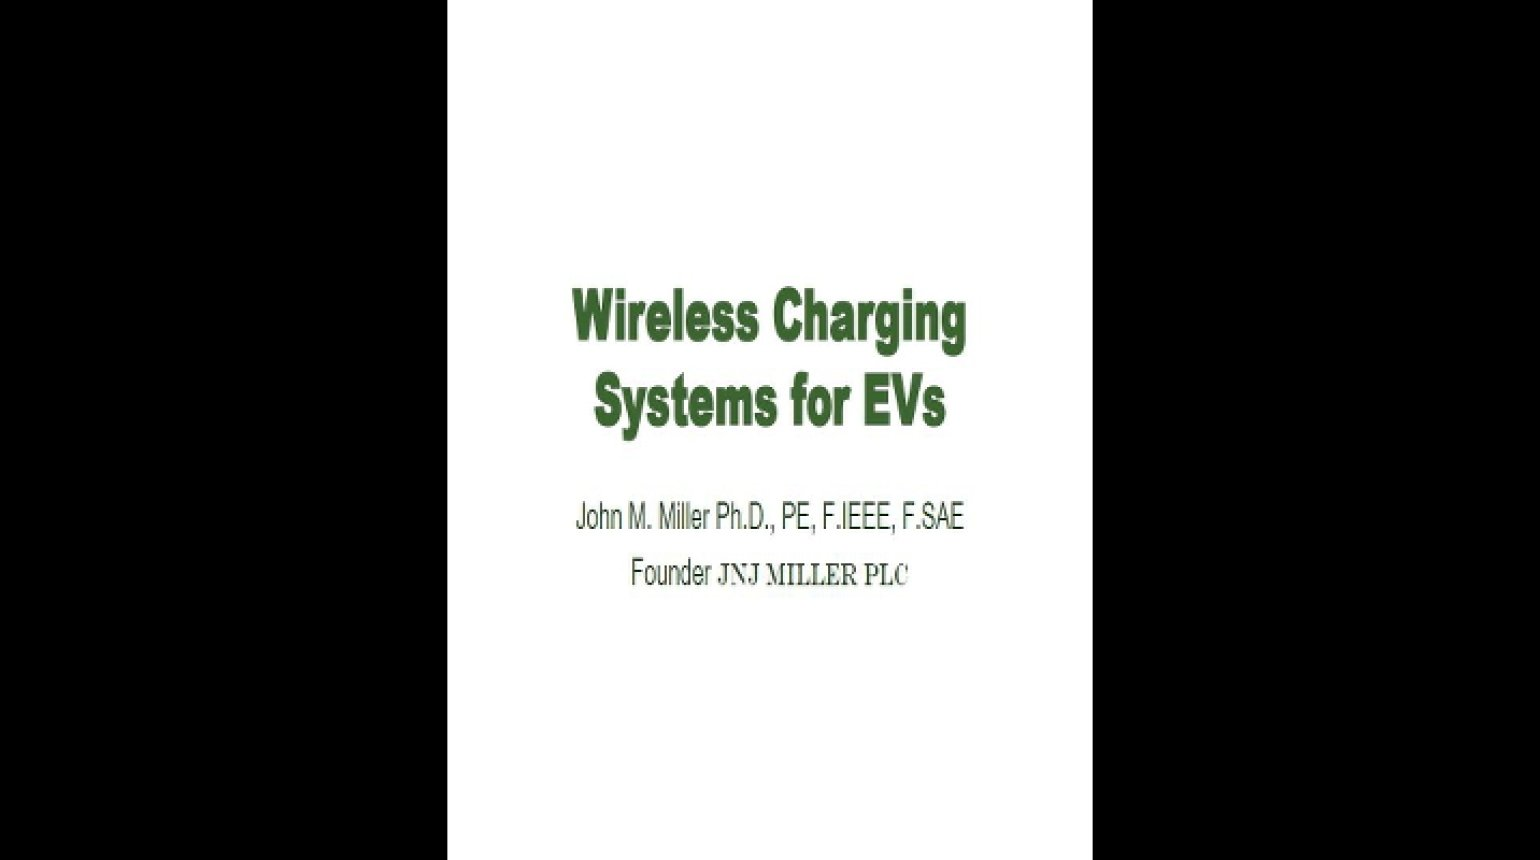 Video - Wireless Charging Systems for EVs